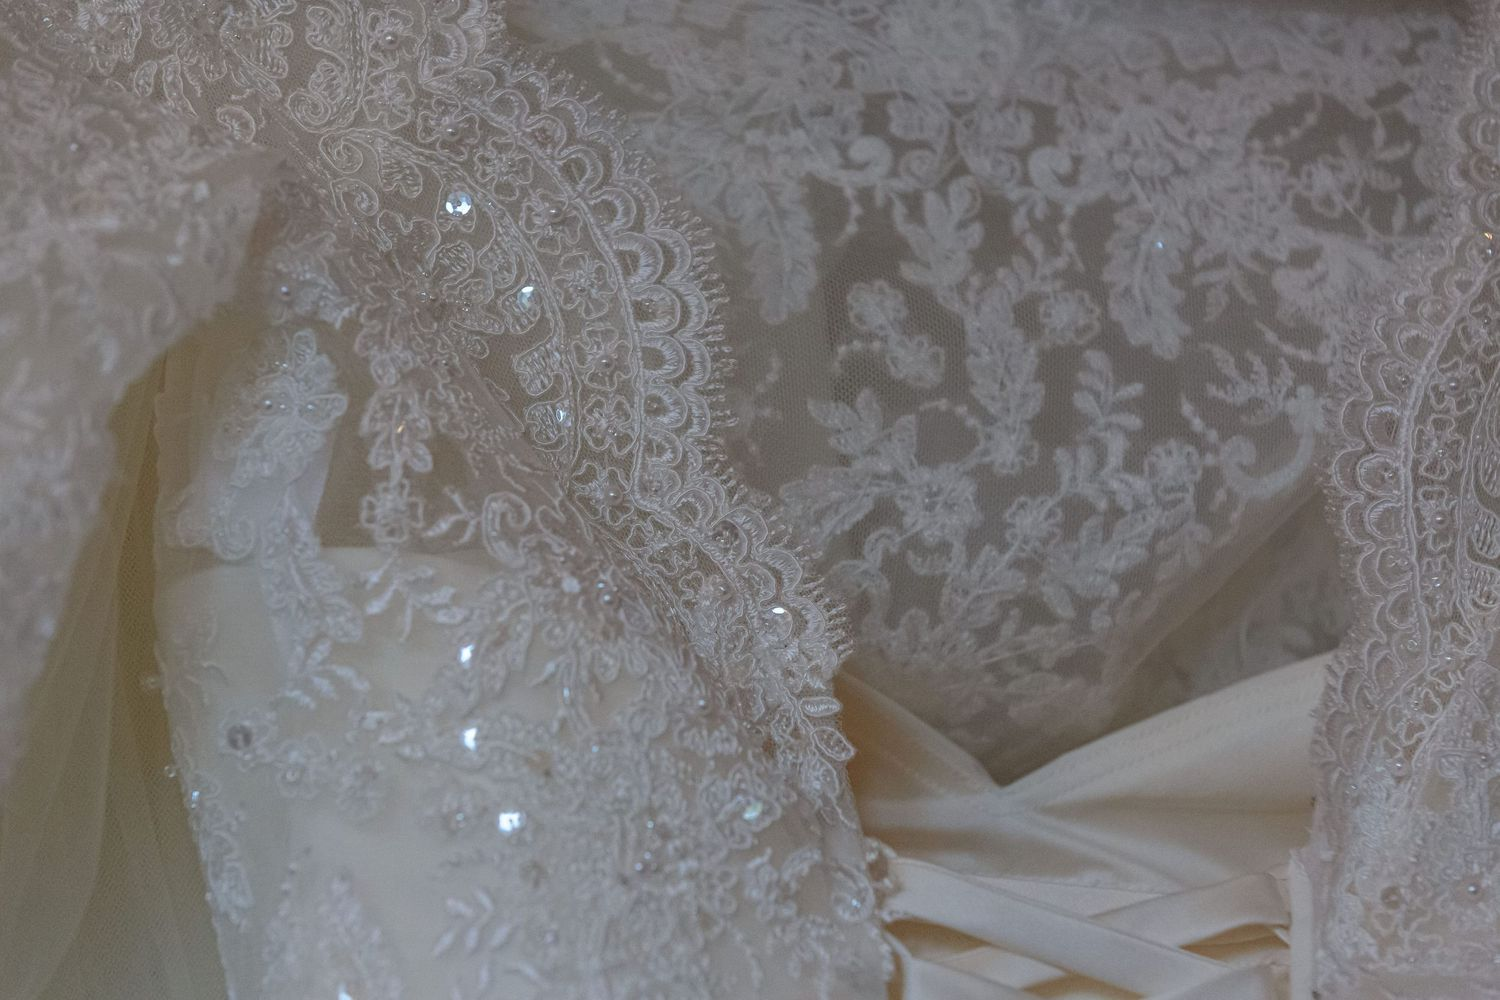 detail shot of the lace on the brides dress and bolero